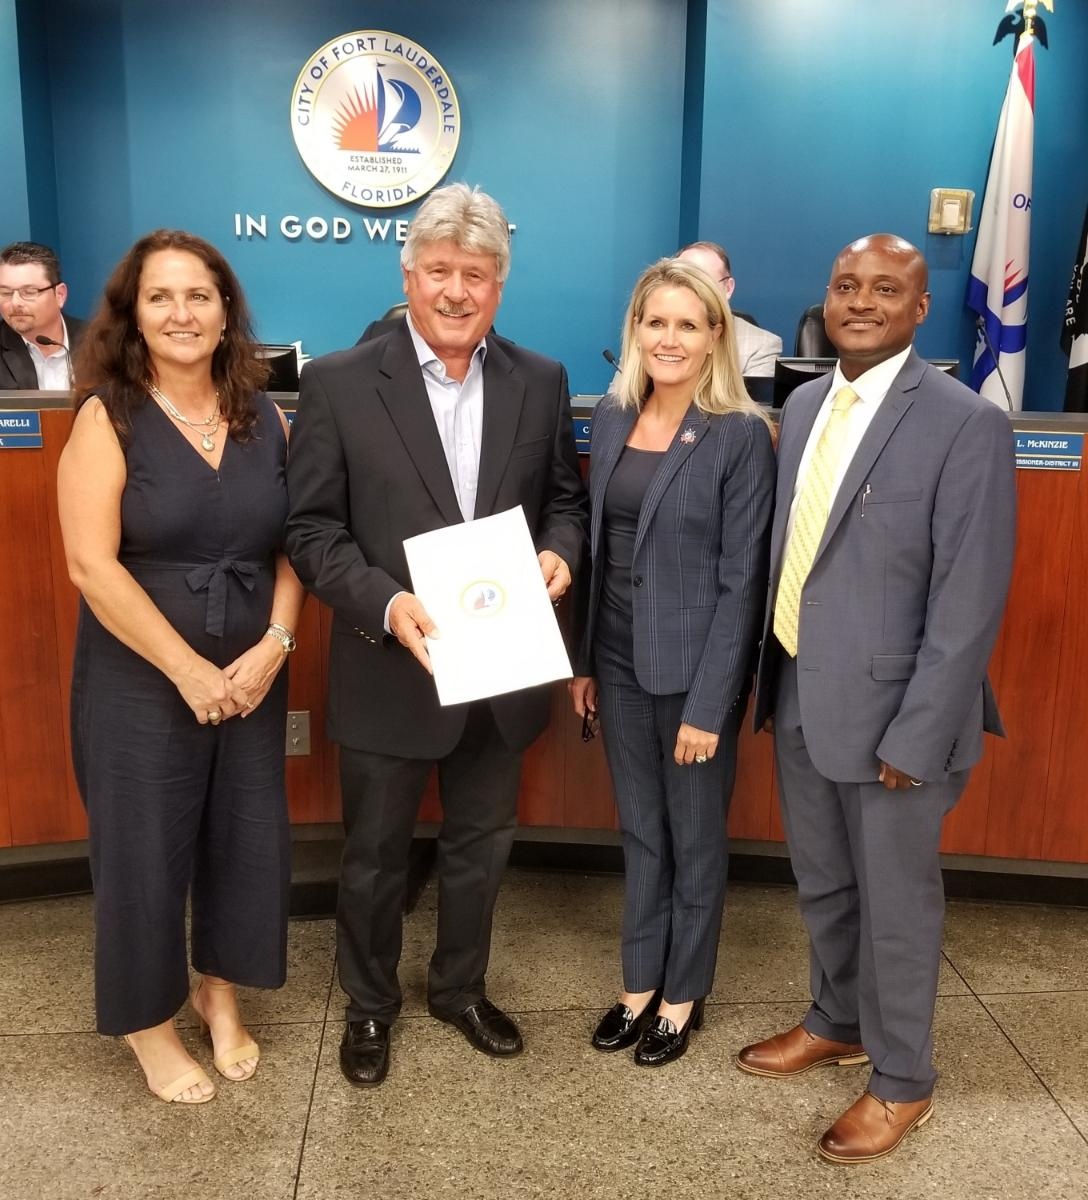 Banyan Recognized by the City of Fort Lauderdale